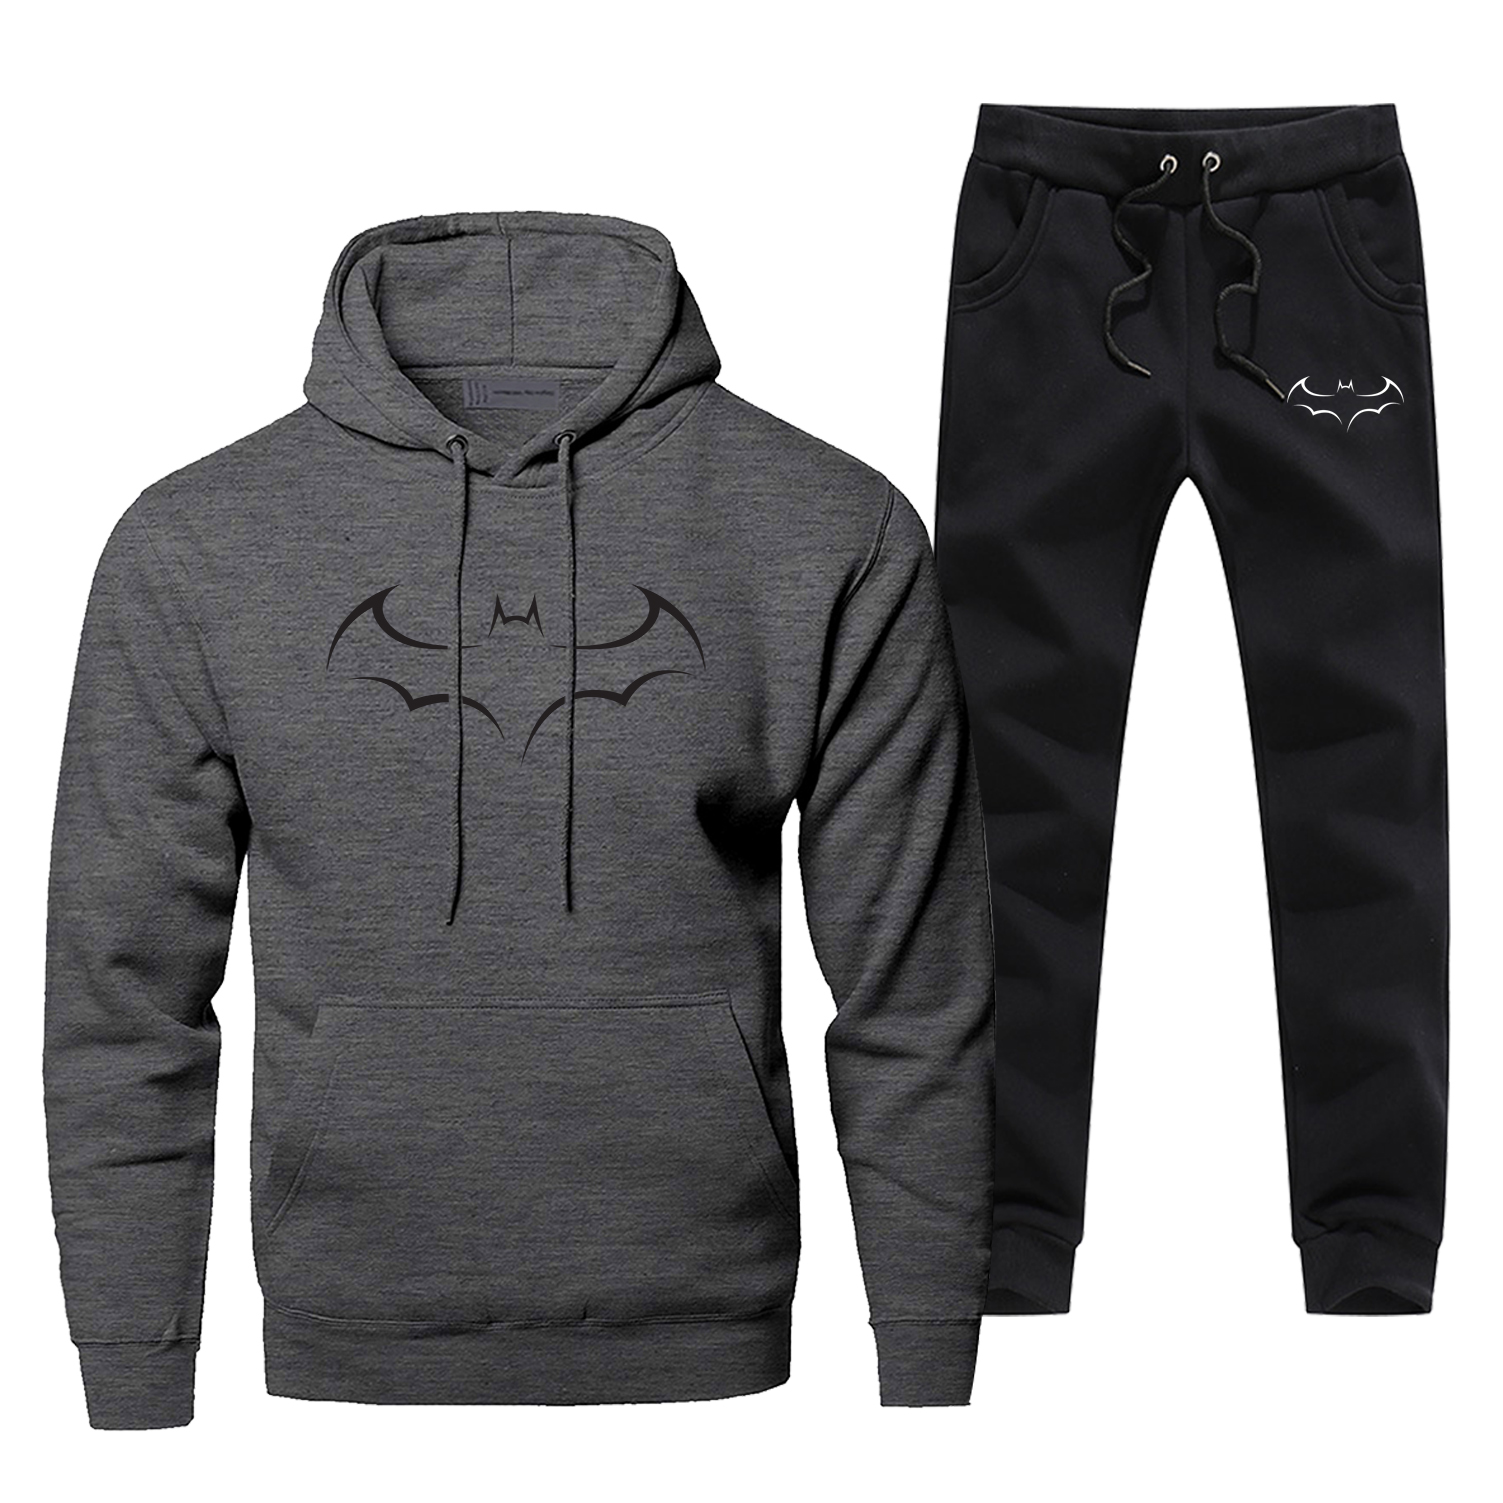 Men Batman Hoodies Badman Superhero Sets Two Piece Pant Mens Hoodies Sweatshirt Sweatpants Streetwear Sportswear Sweatshirts